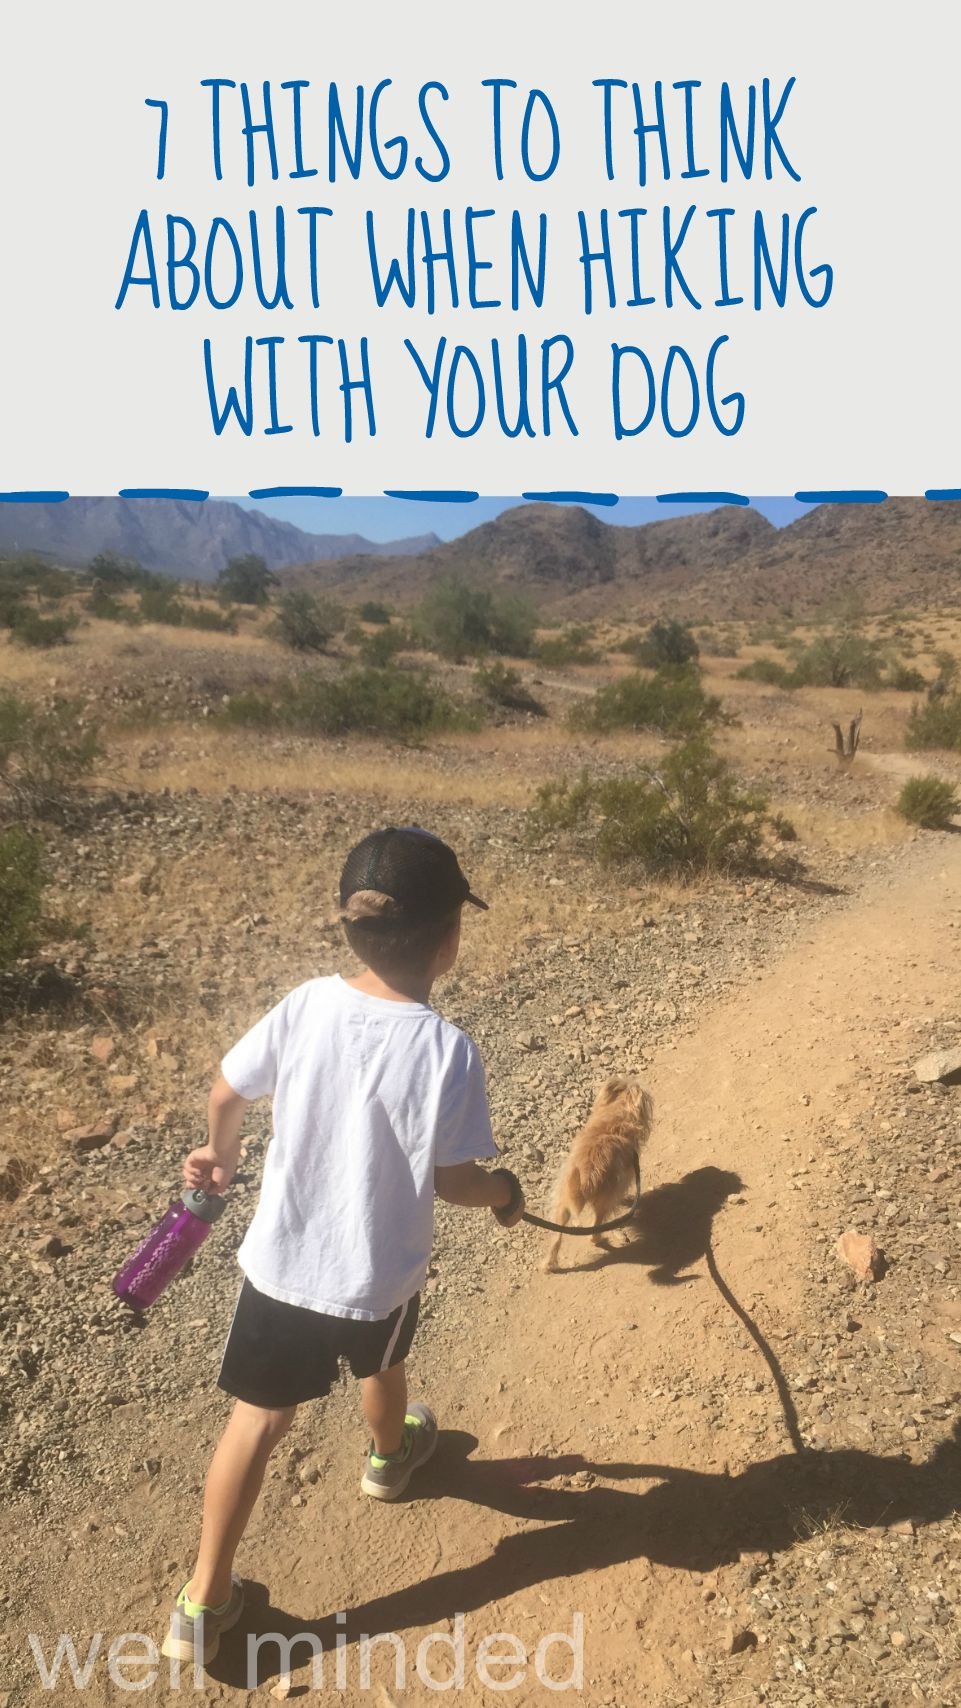 7 Things to Think About When Hiking With Your Dog